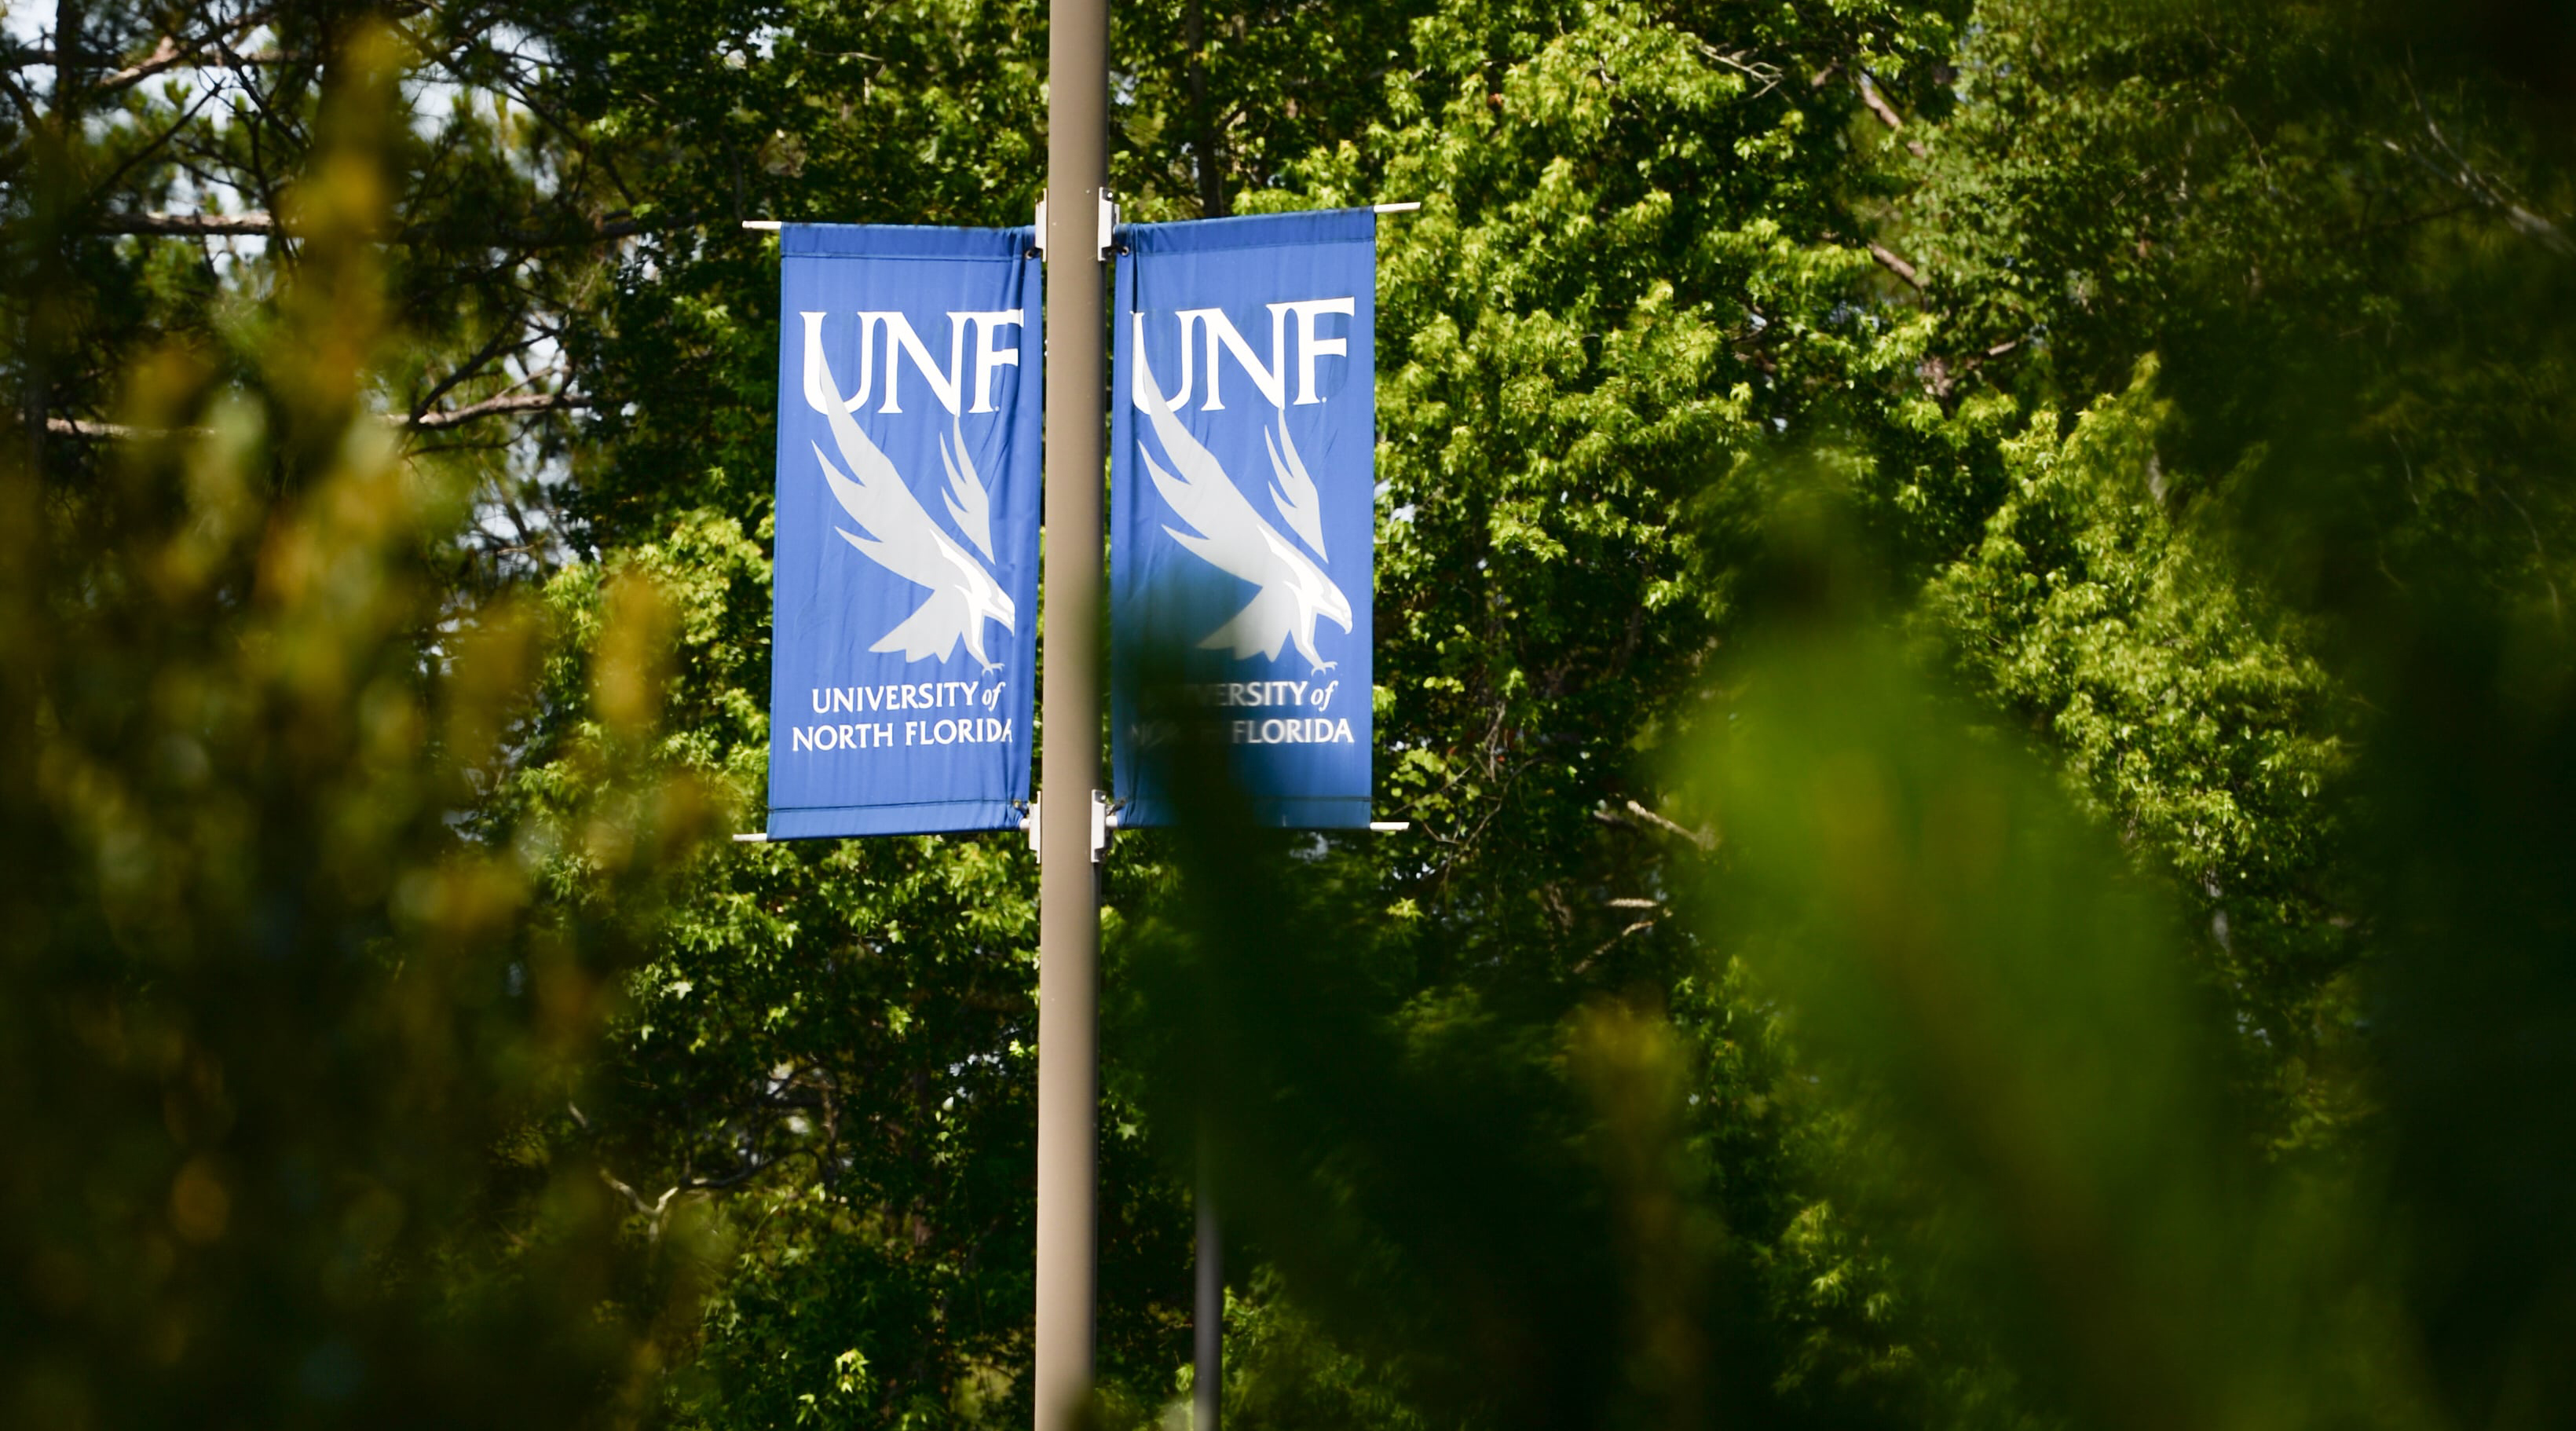 Signs with UNF logo with trees in the background